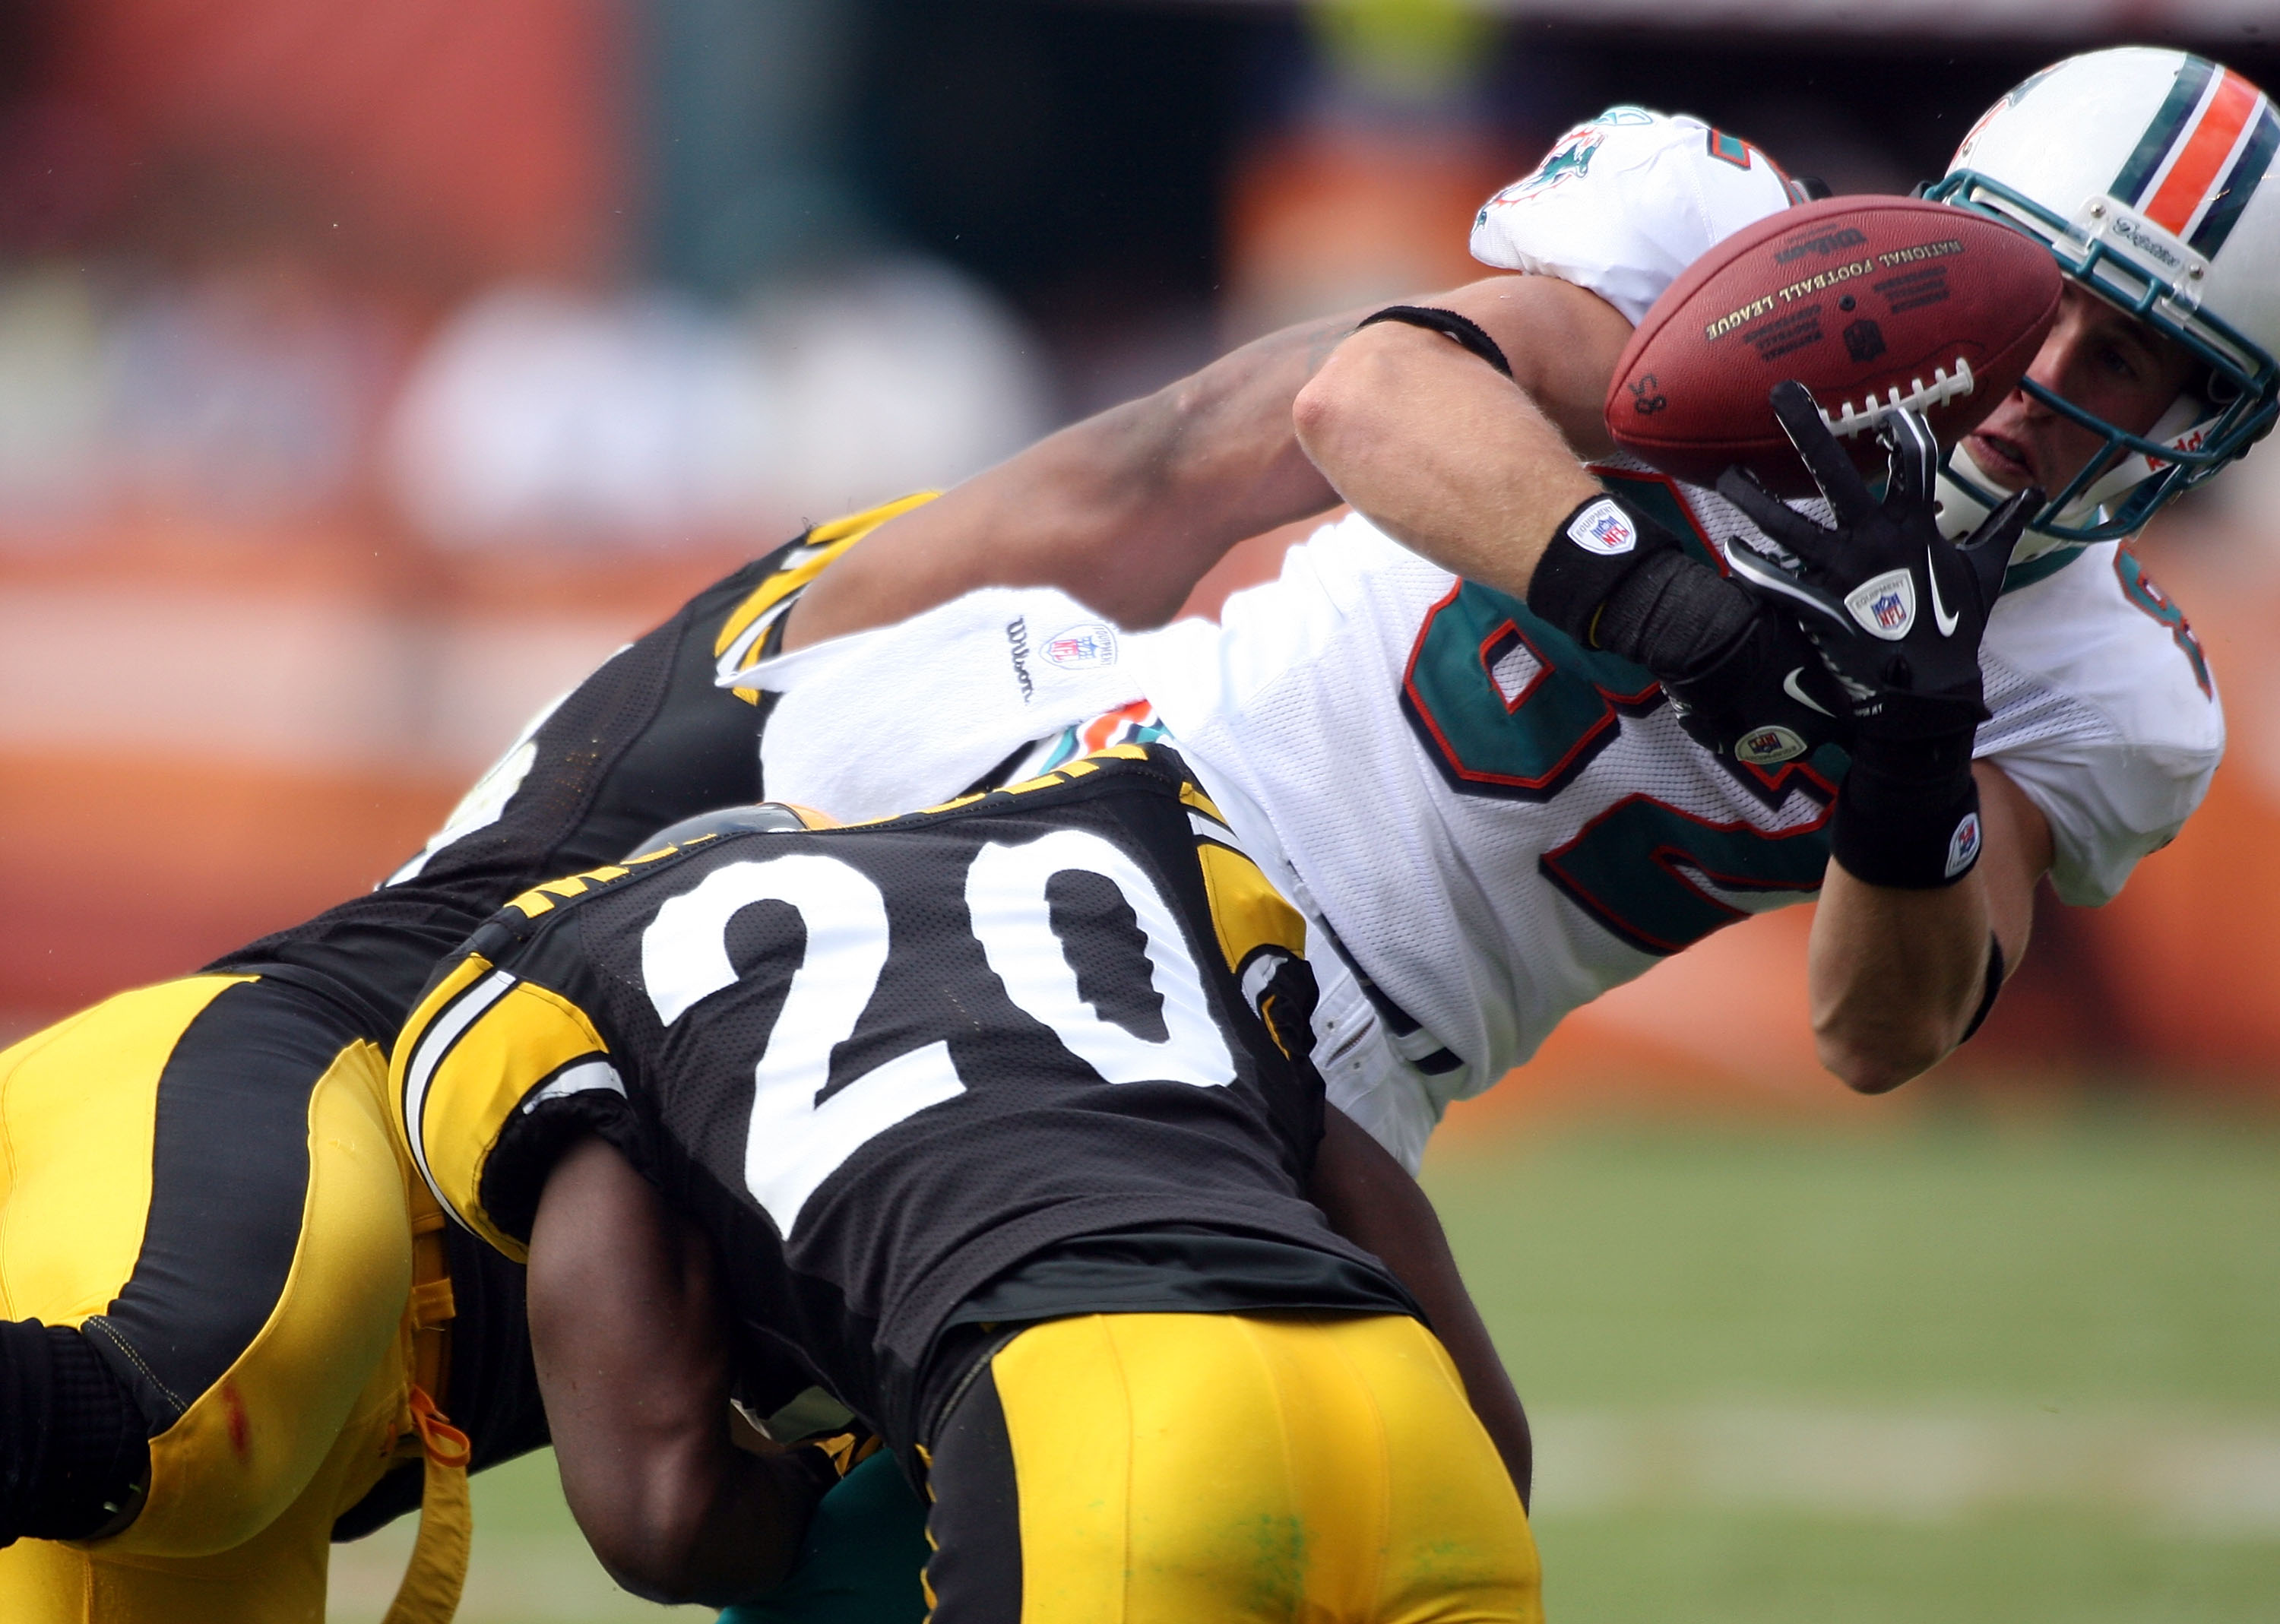 MIAMI - OCTOBER 24:  Receiver Brian Hartline #82 fumbles after being hit by cornerback Bryant Mcfadden #20 of the Pittsburgh Steelers  at Sun Life Stadium on October 24, 2010 in Miami, Florida.  (Photo by Marc Serota/Getty Images)